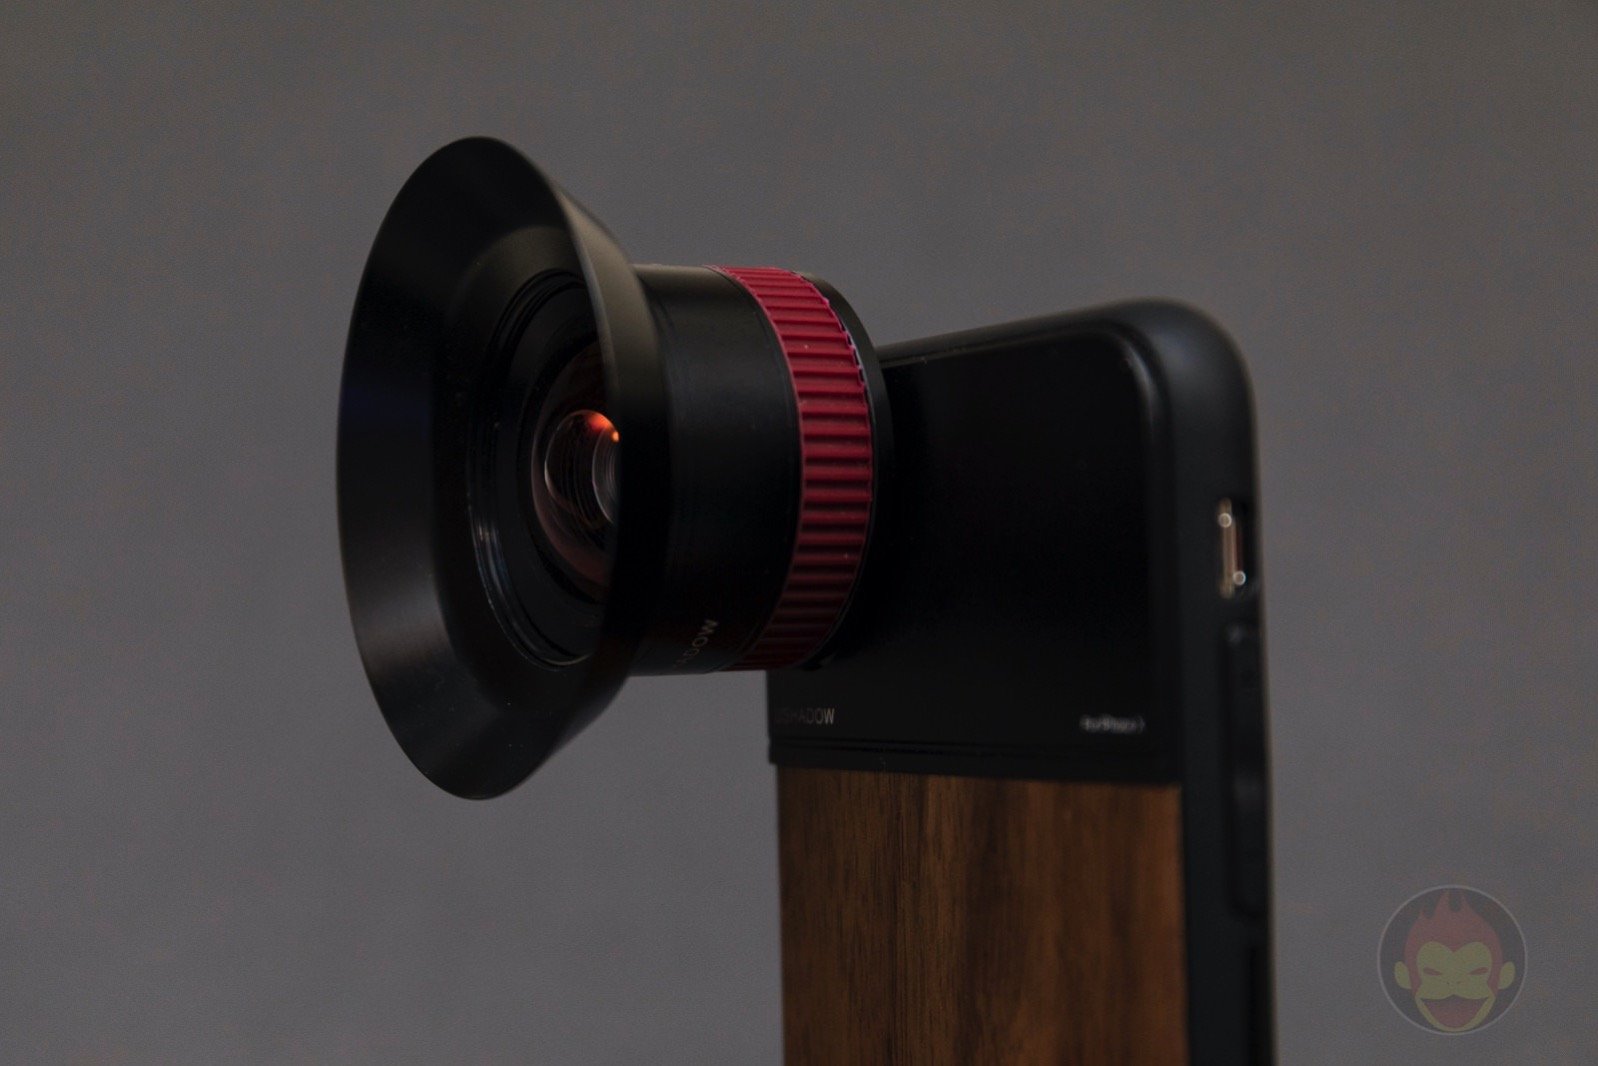 USHADOW X1 Lens System Review 13